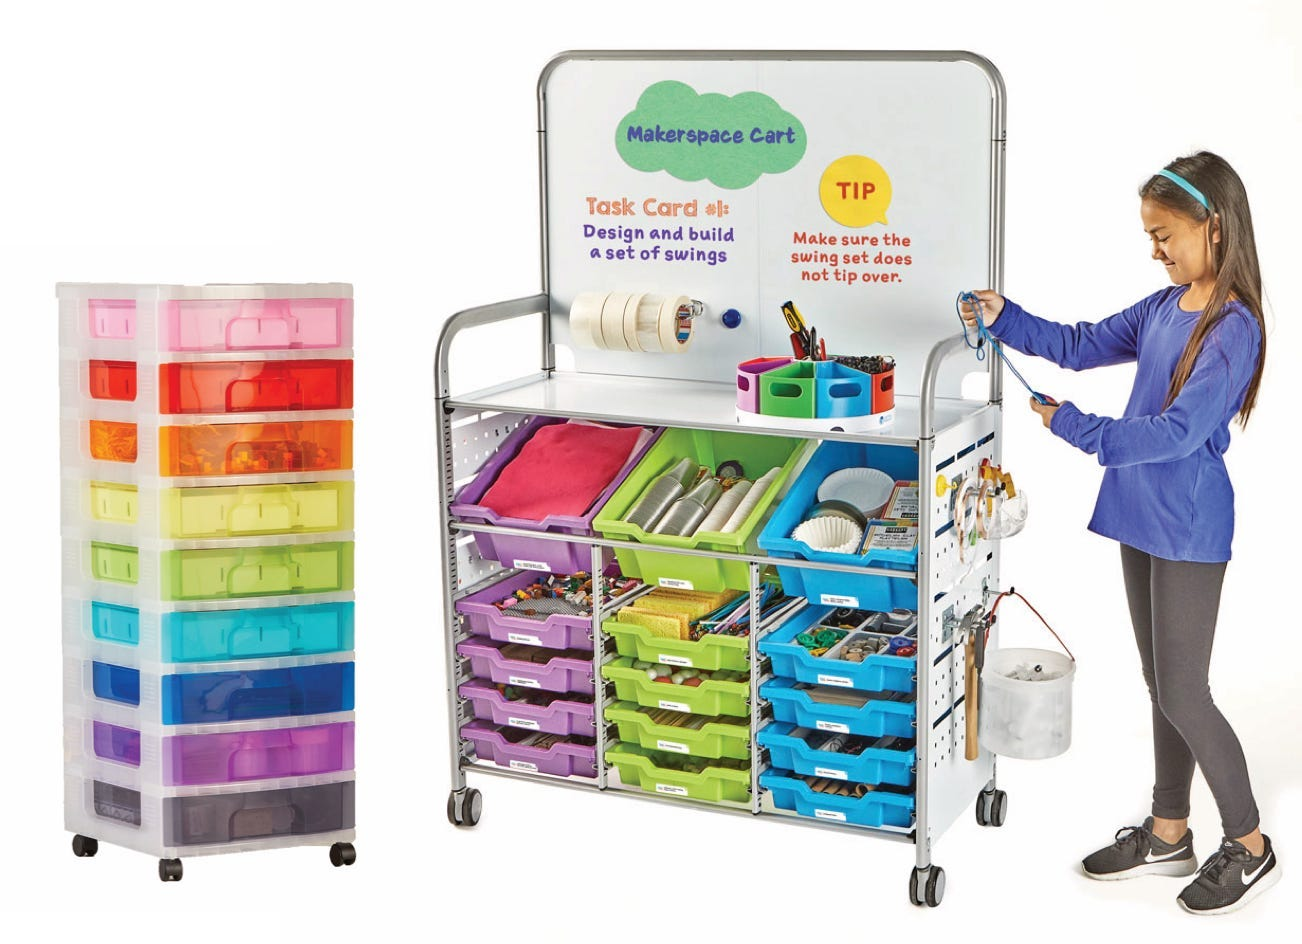 Makerspace classroom and STEM lab carts with a girl working